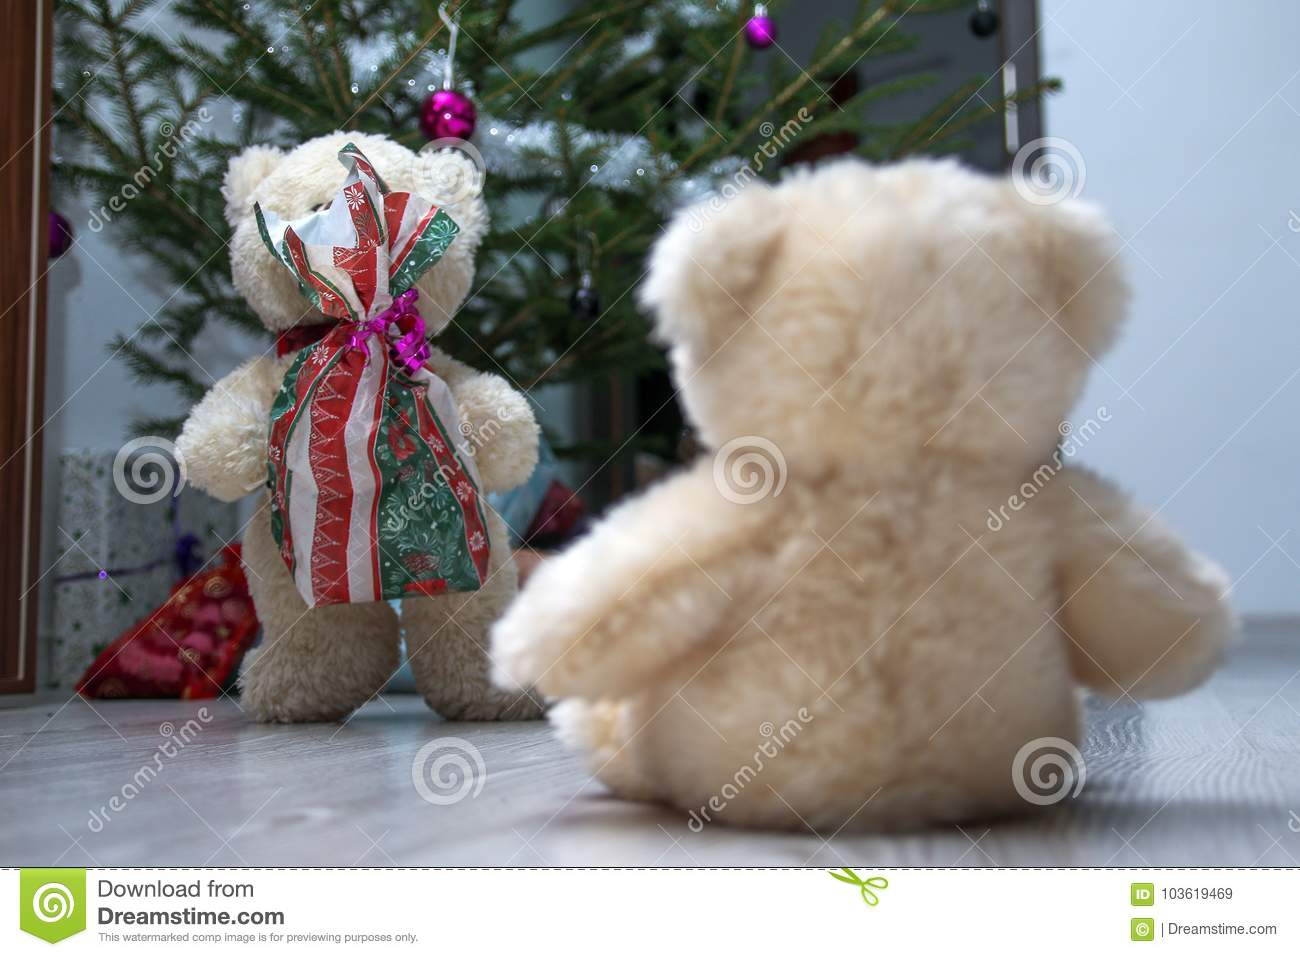 2c94c69263 Two cute teddy bears are sitting by the Christmas tree. One is holding the  Christmas gift and giving it to the other one.